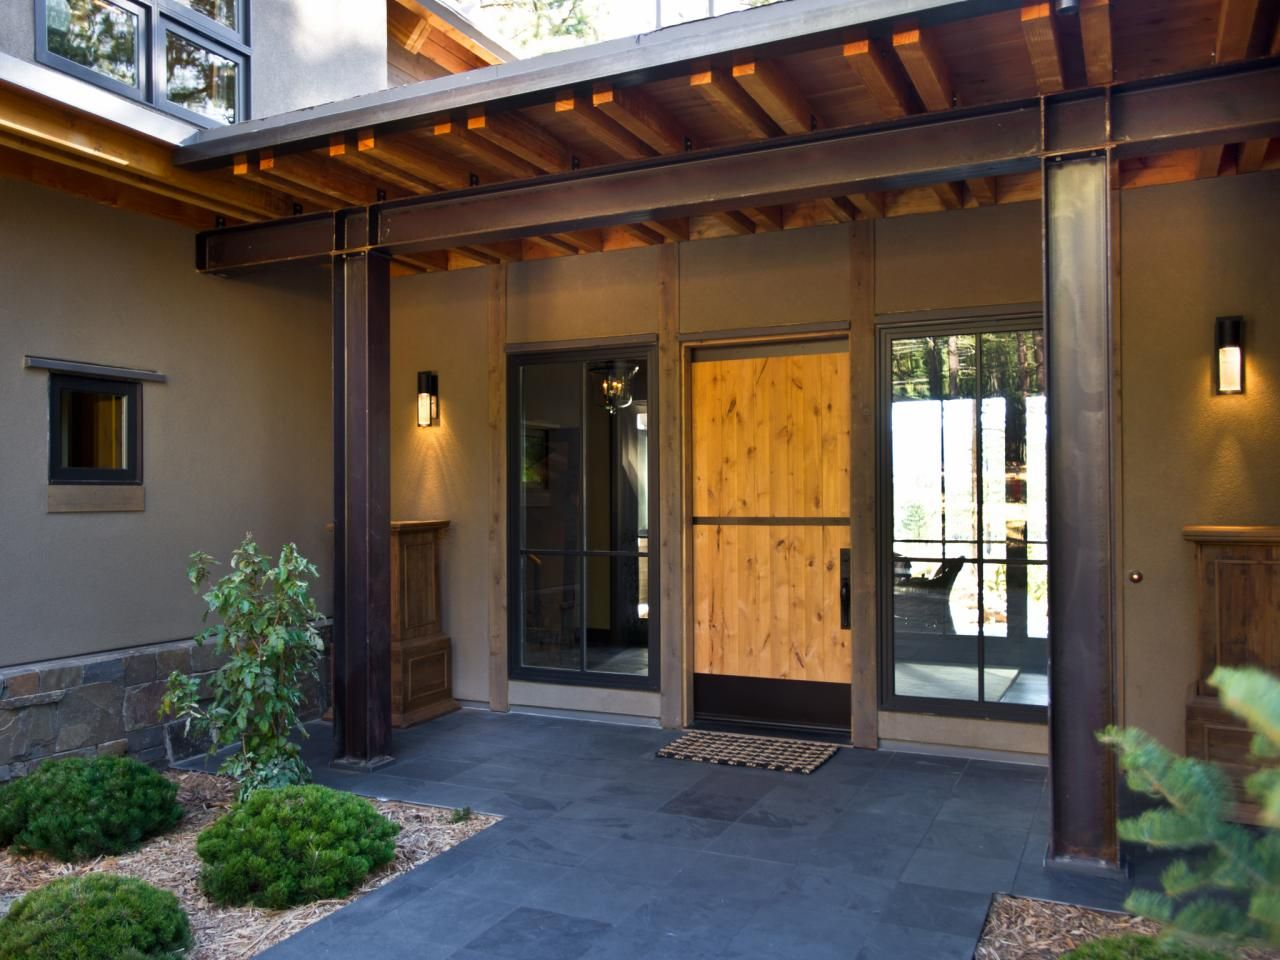 48 Amazing Minimalist House Ideas With Front Porch Design 39 In